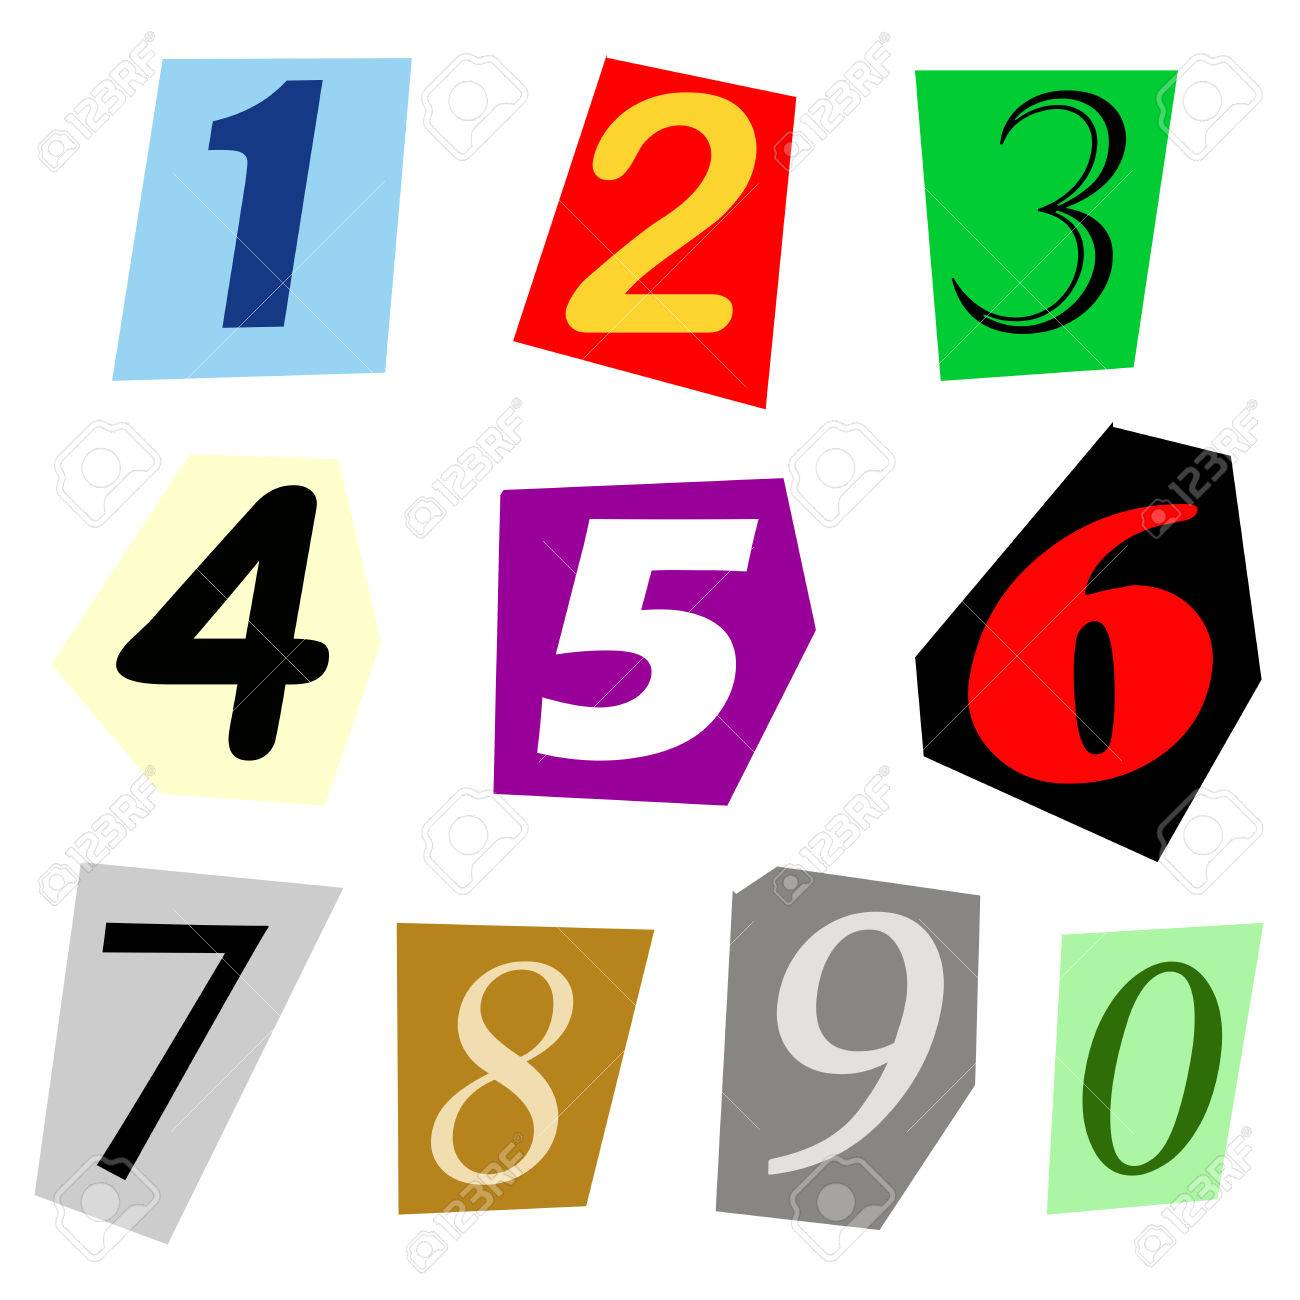 complete set of single digit numbers cut out from magazine